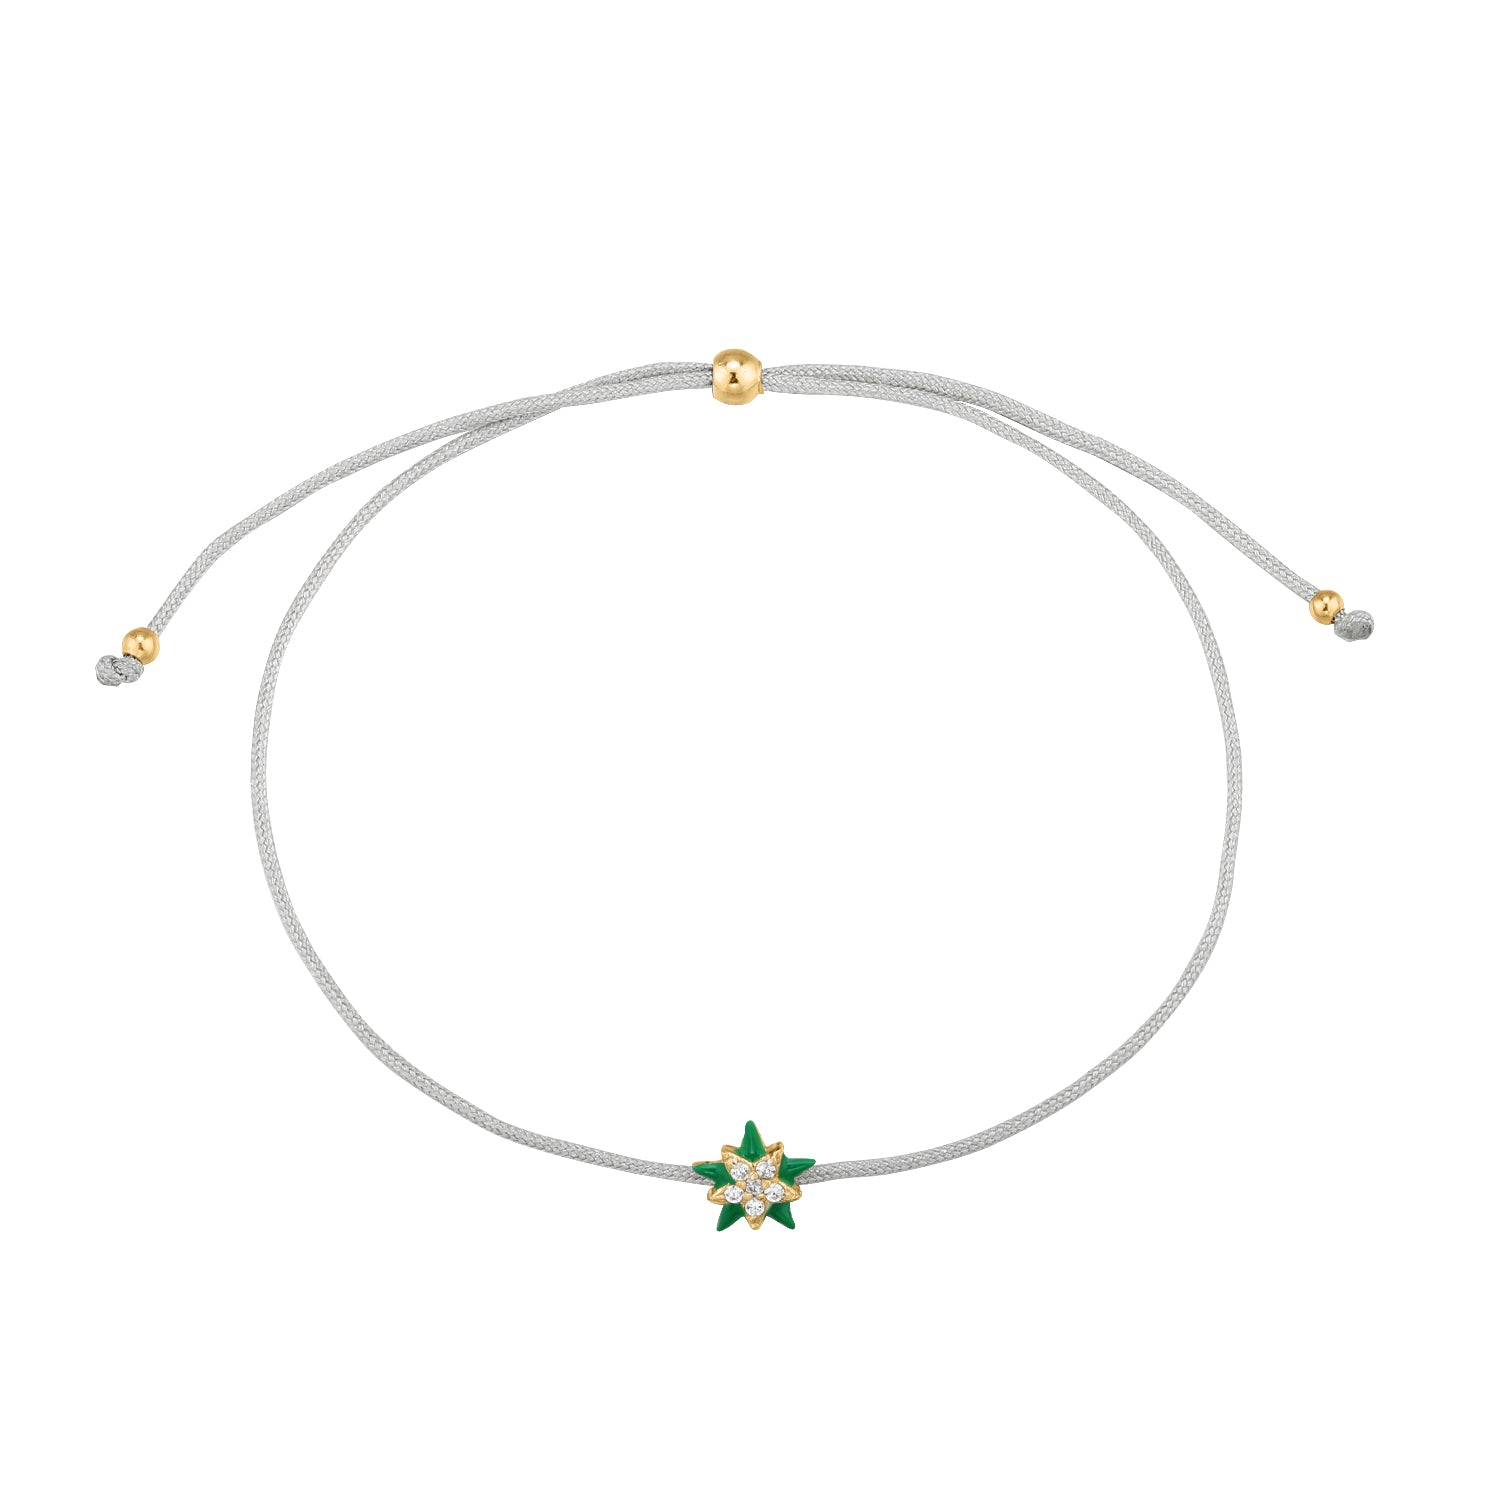 Christmas Selection | Xmas Star Bracelet | White CZ | Grey Beige Thread & 14K Gold Plated 925 Silver